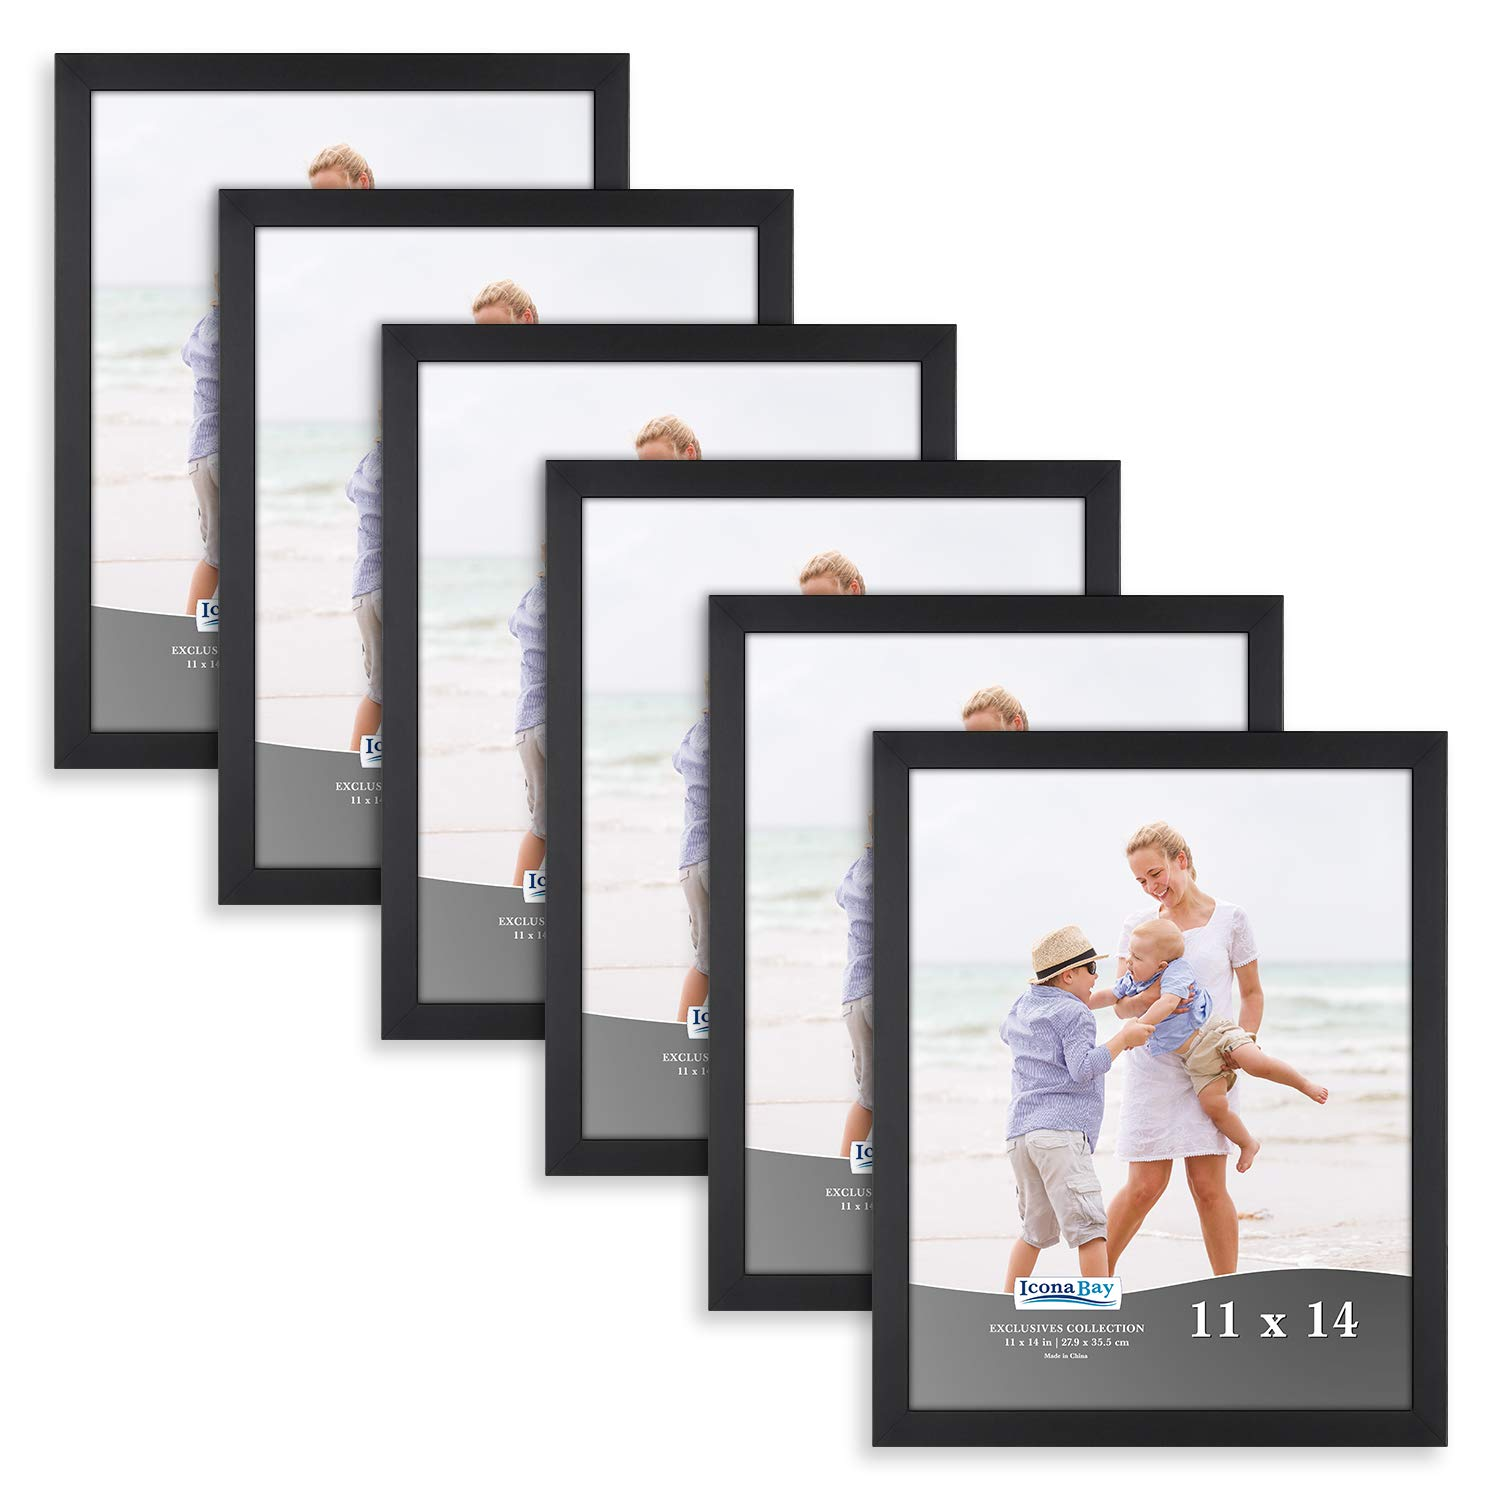 Icona Bay 11x14 Picture Frame (6 Pack, Black), Black Sturdy Wood Composite Photo Frame 11 x 14, Wall or Table Mount, Set of 6 Exclusives Collection by Icona Bay